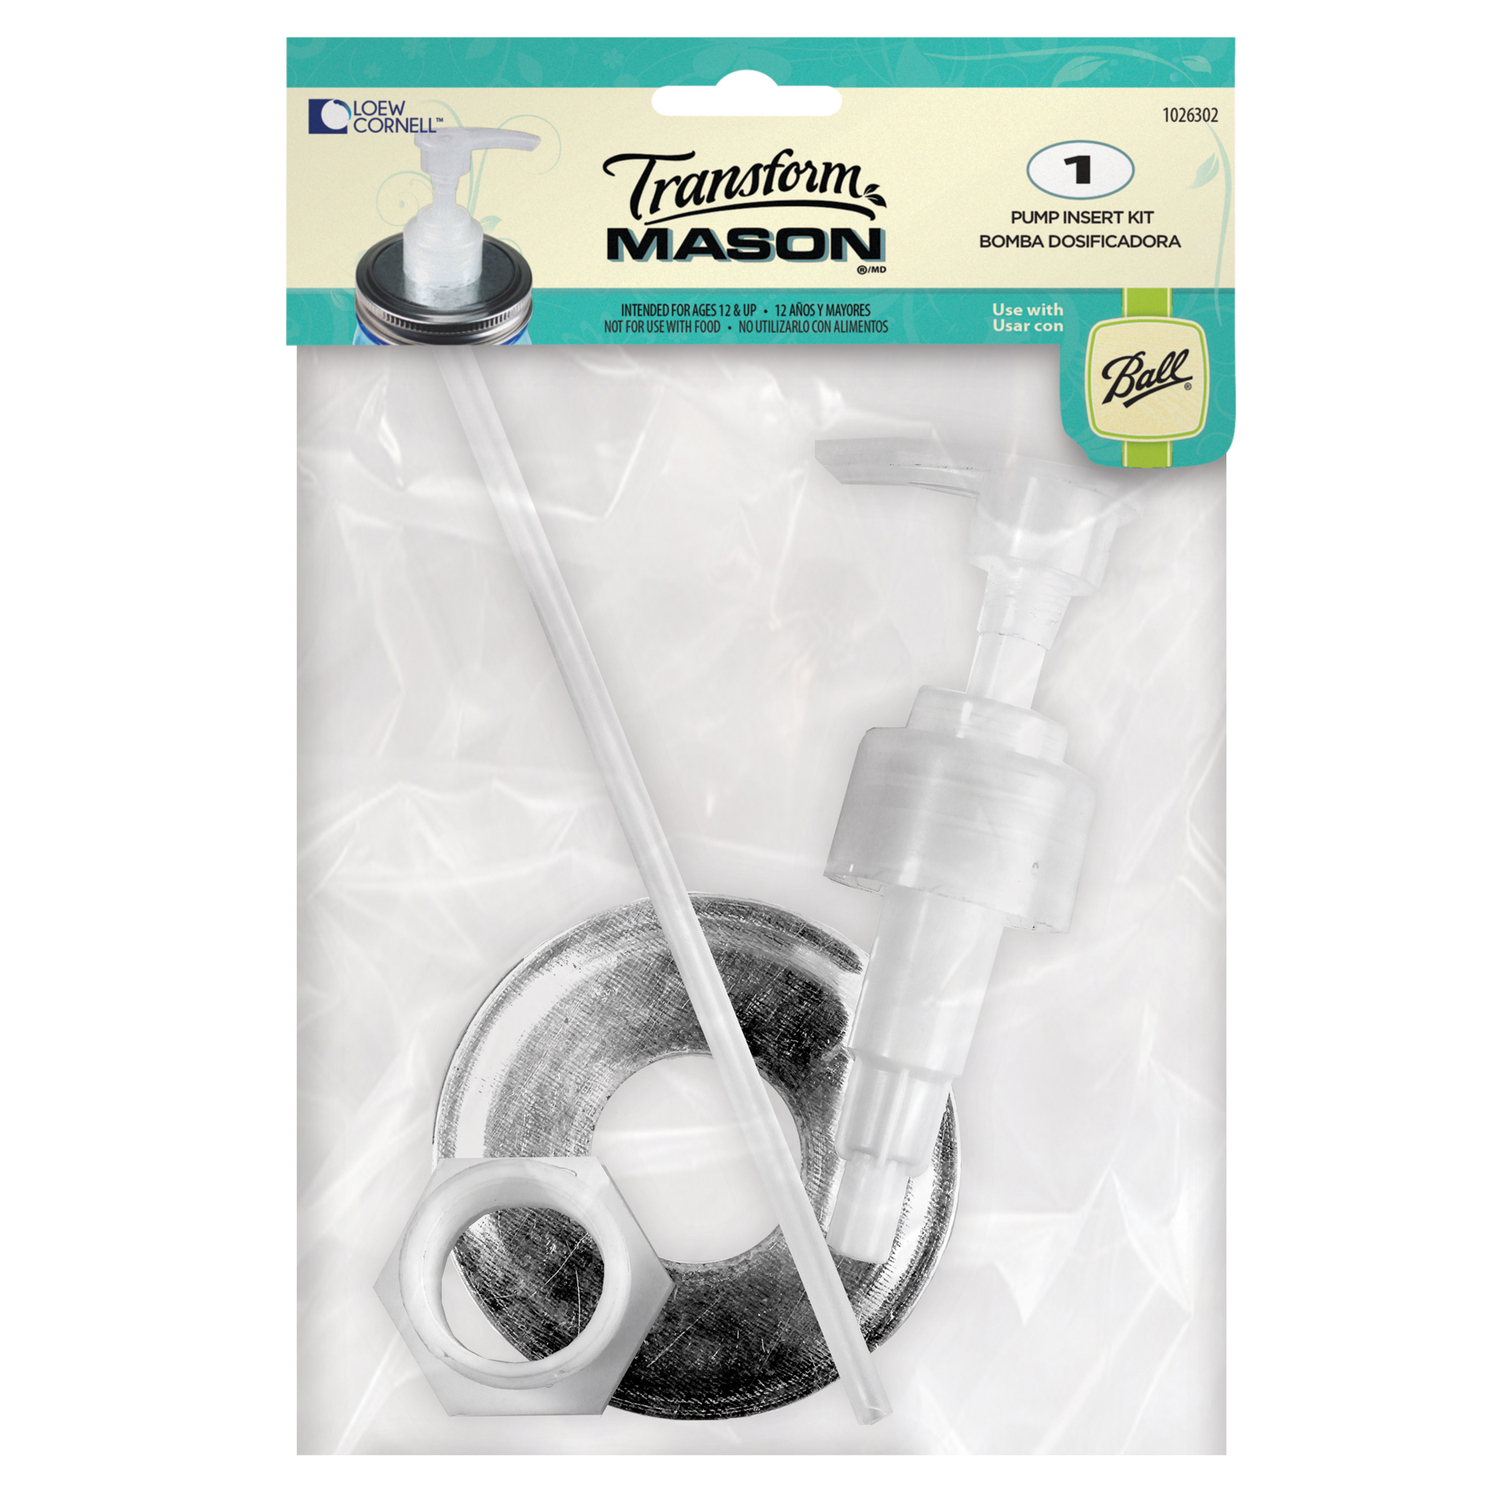 Loew Cornell  Transform Mason  Regular Mouth  Jar Soap Pump